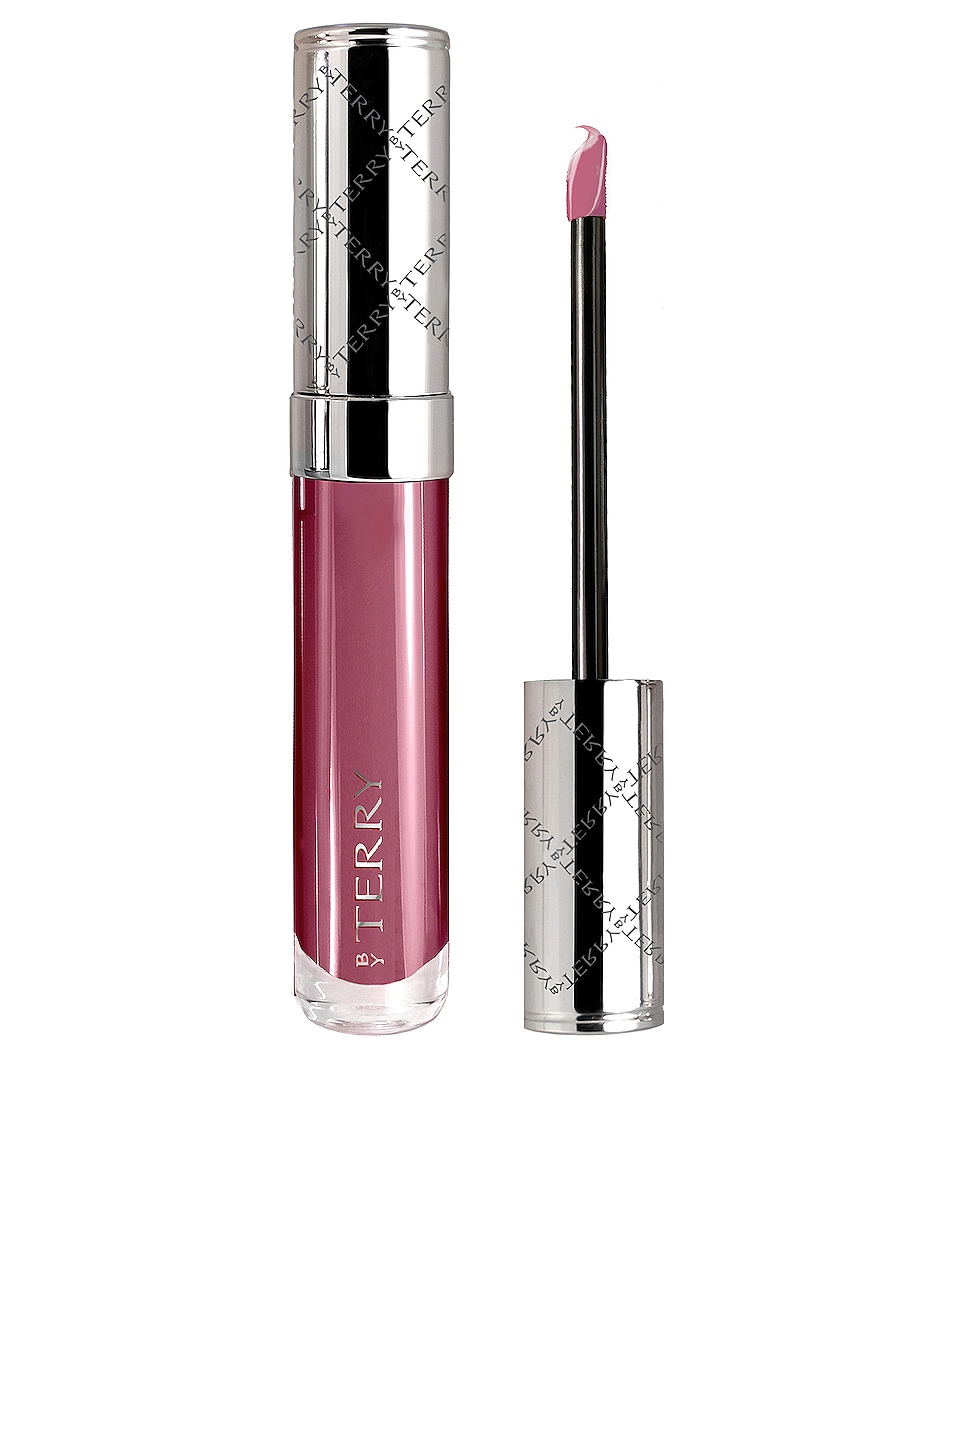 By Terry Gloss Terrybly Shine Hydra-Lift Lip Lacquer in Bitten Splash